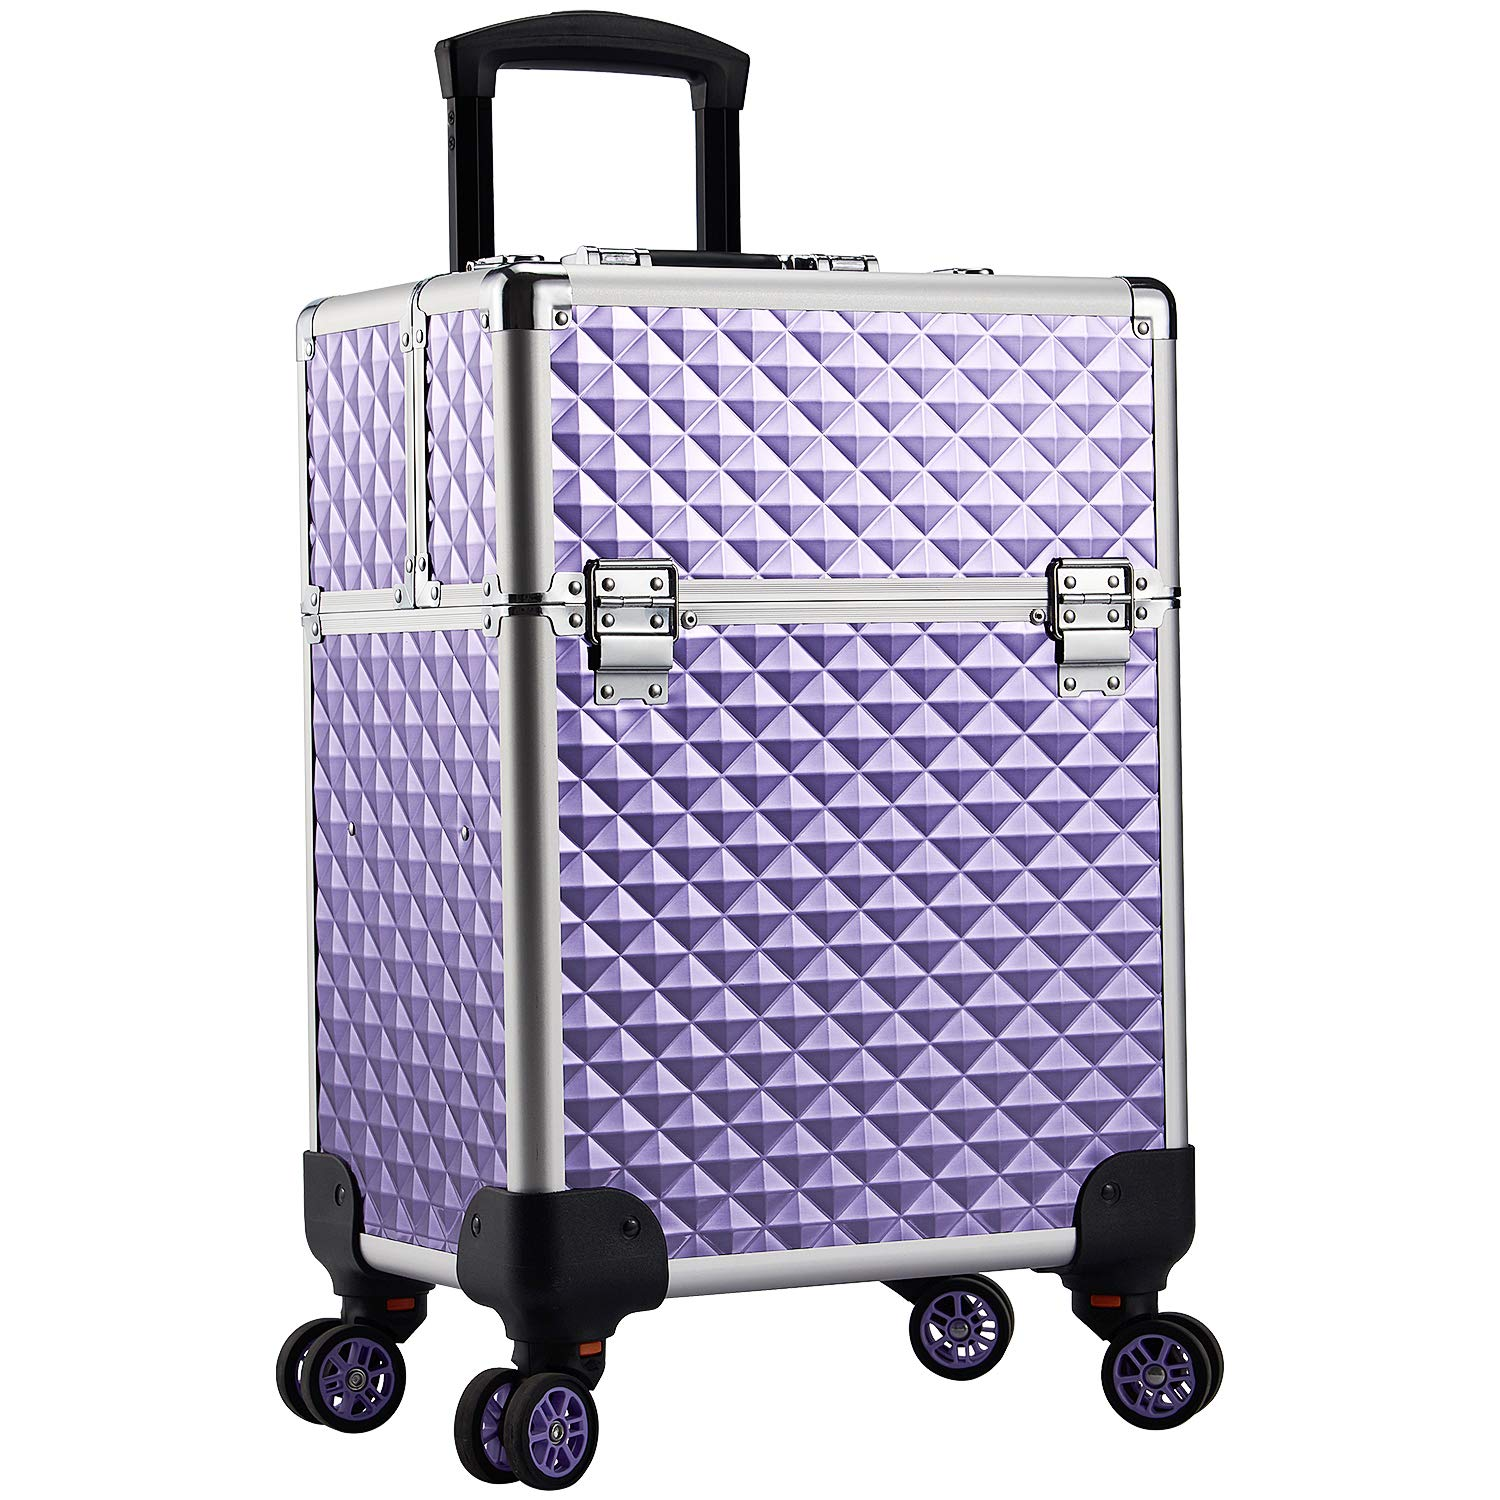 Purple professional trolley makeup case